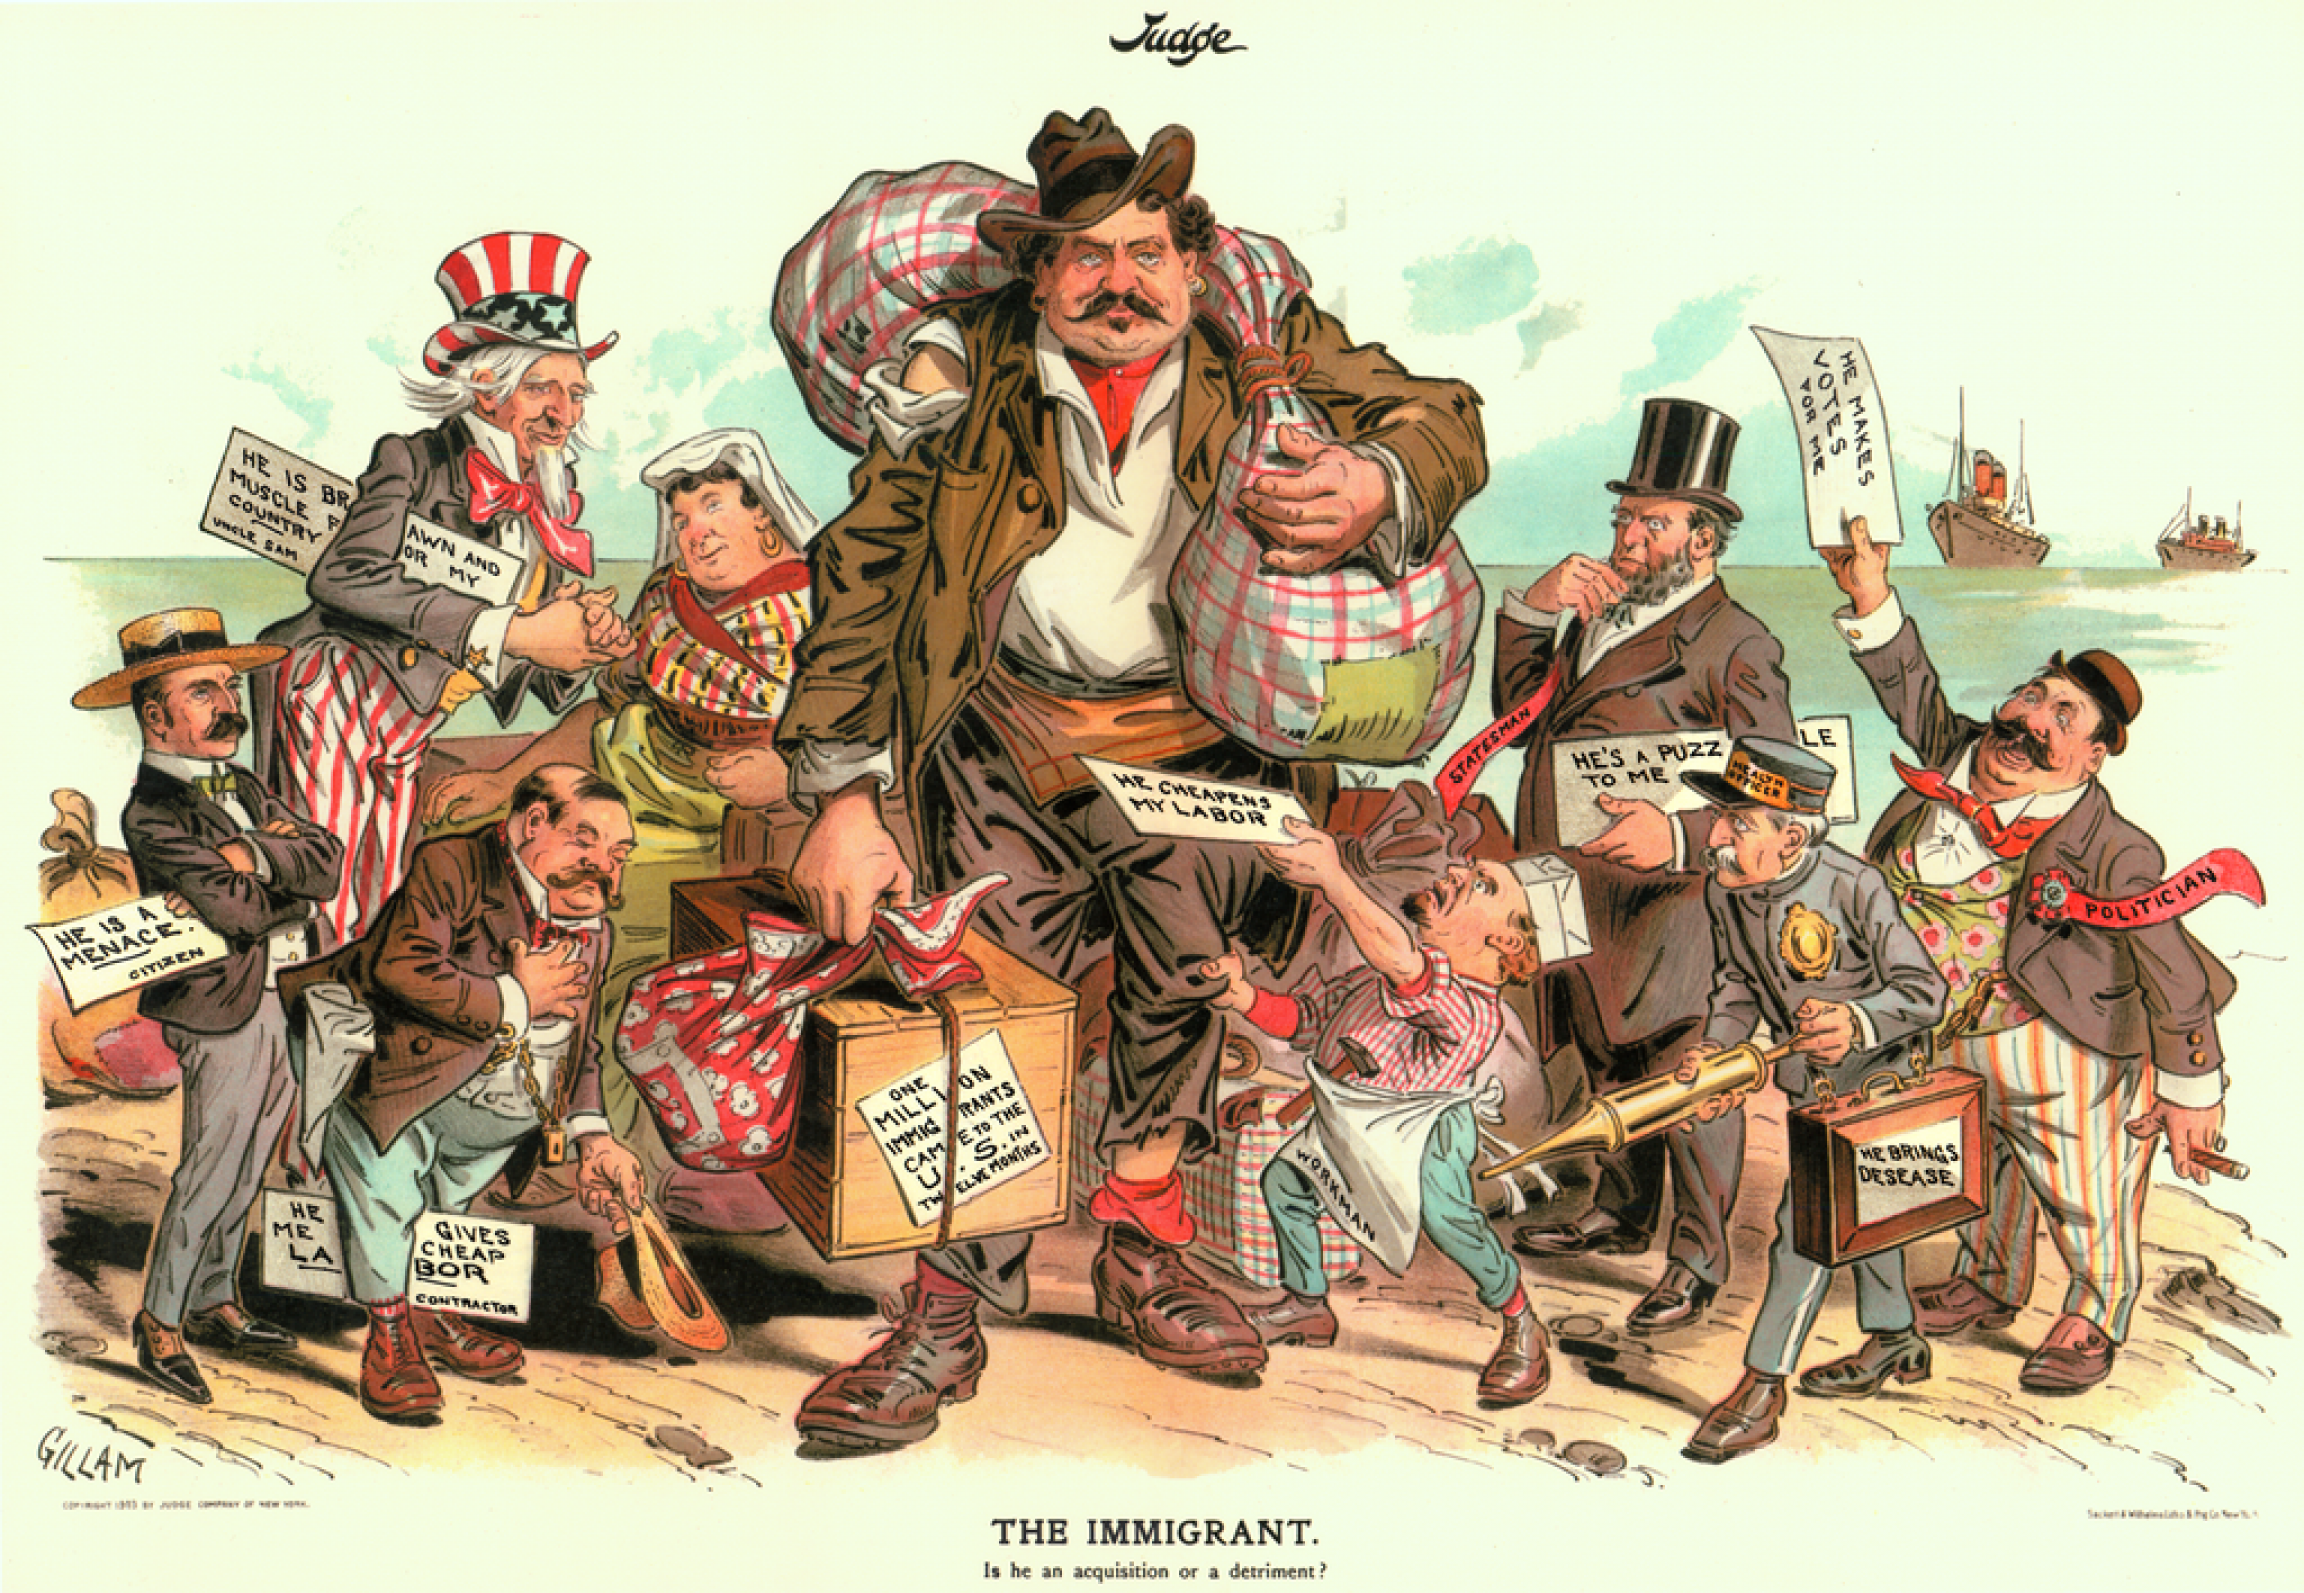 A political cartoon of a caucasian male immigrant with others around him holding signs